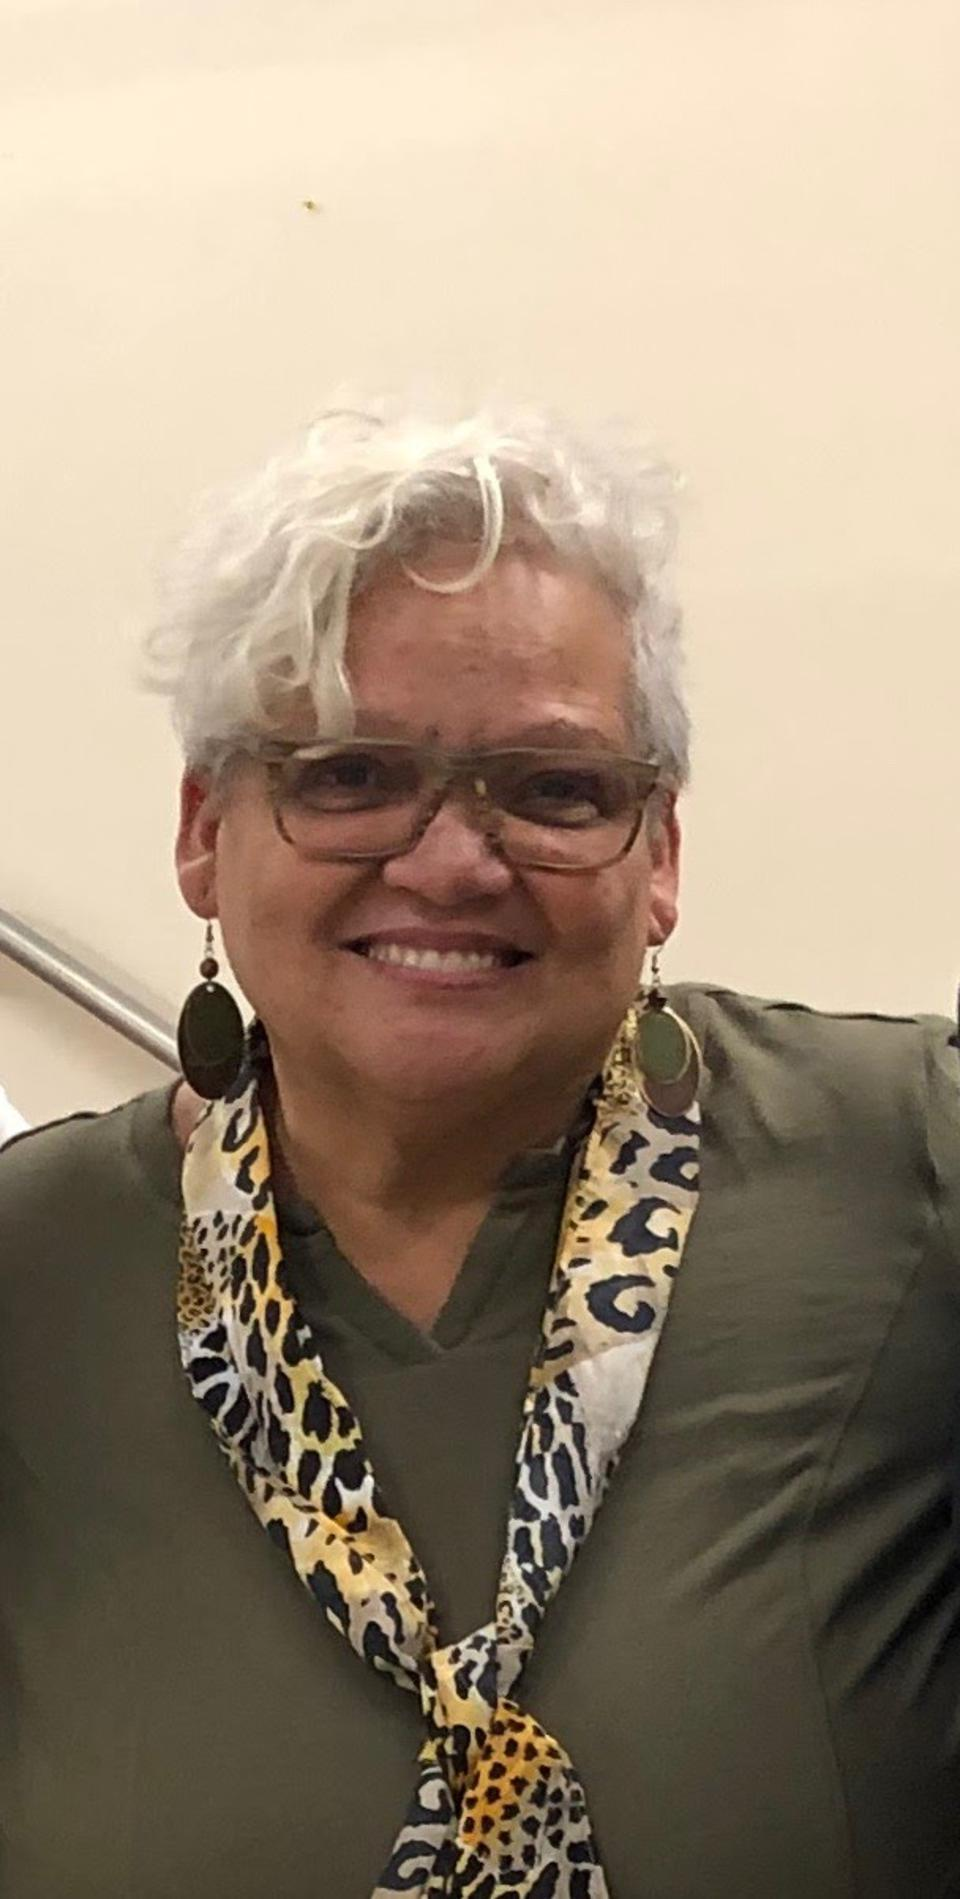 A woman with short white hair and glasses wearing a hunter green top and leopard scarf.